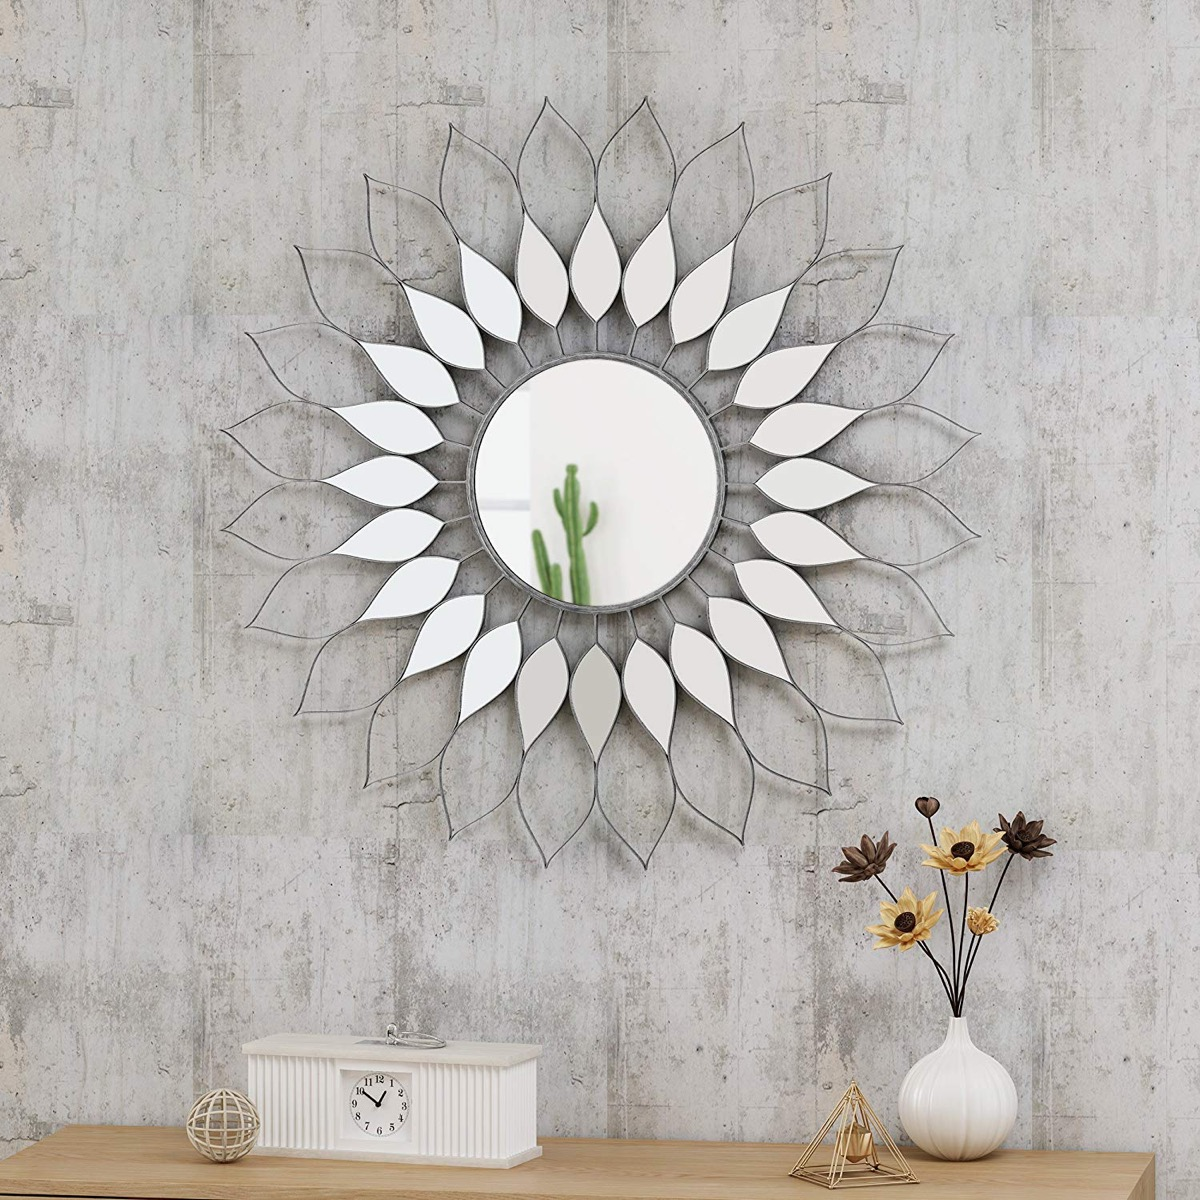 Decorative-Sunburst-Mirror-Flower-Shaped-Metal-Wall-Decor-1